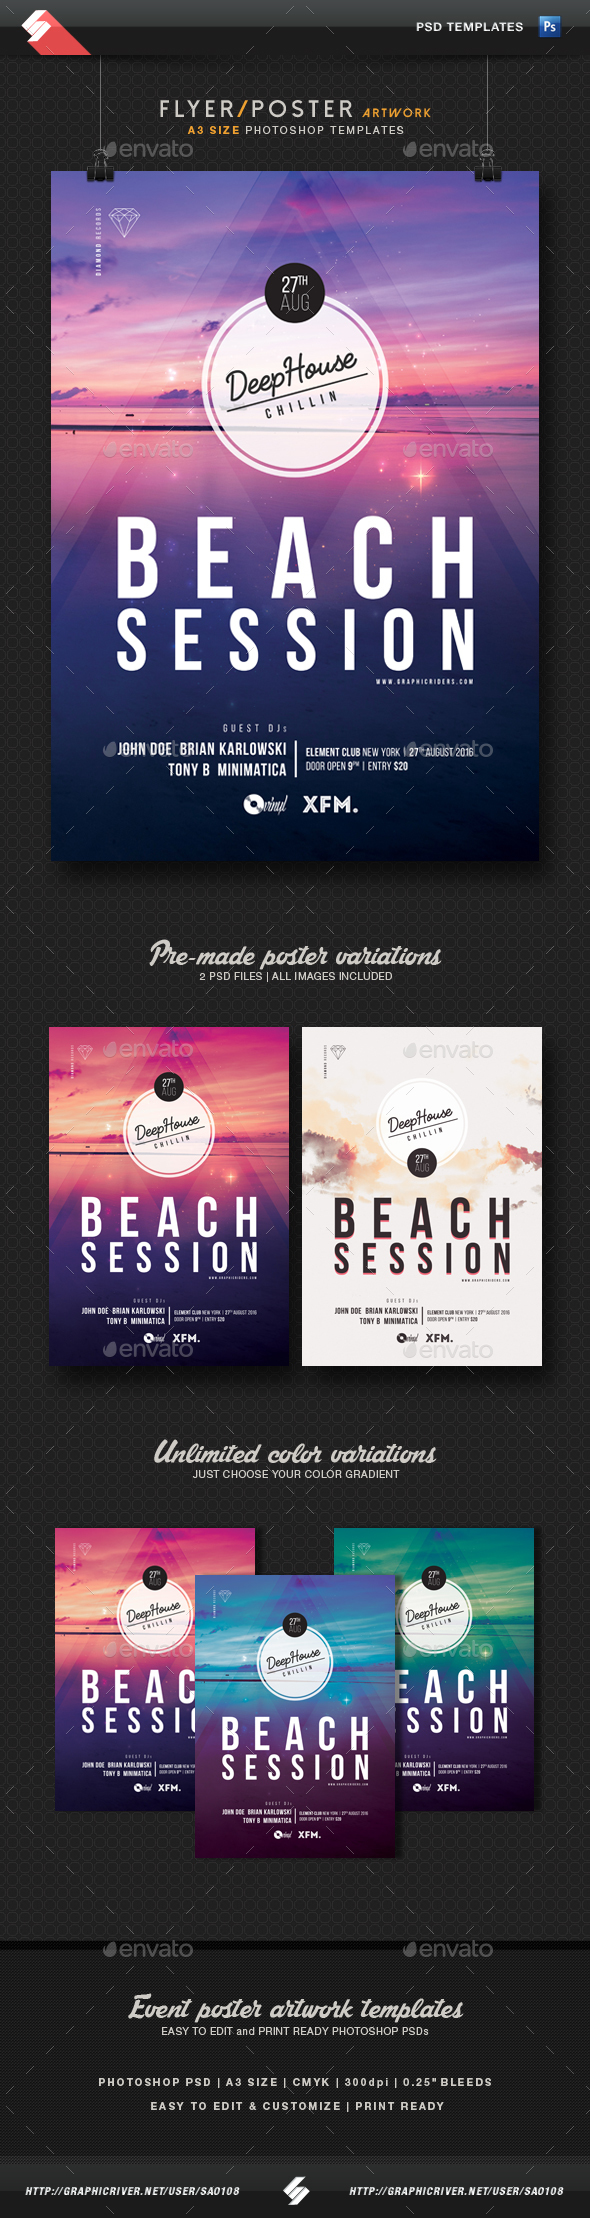 Beach Session - Deep House Flyer Templates A3 - Clubs & Parties Events